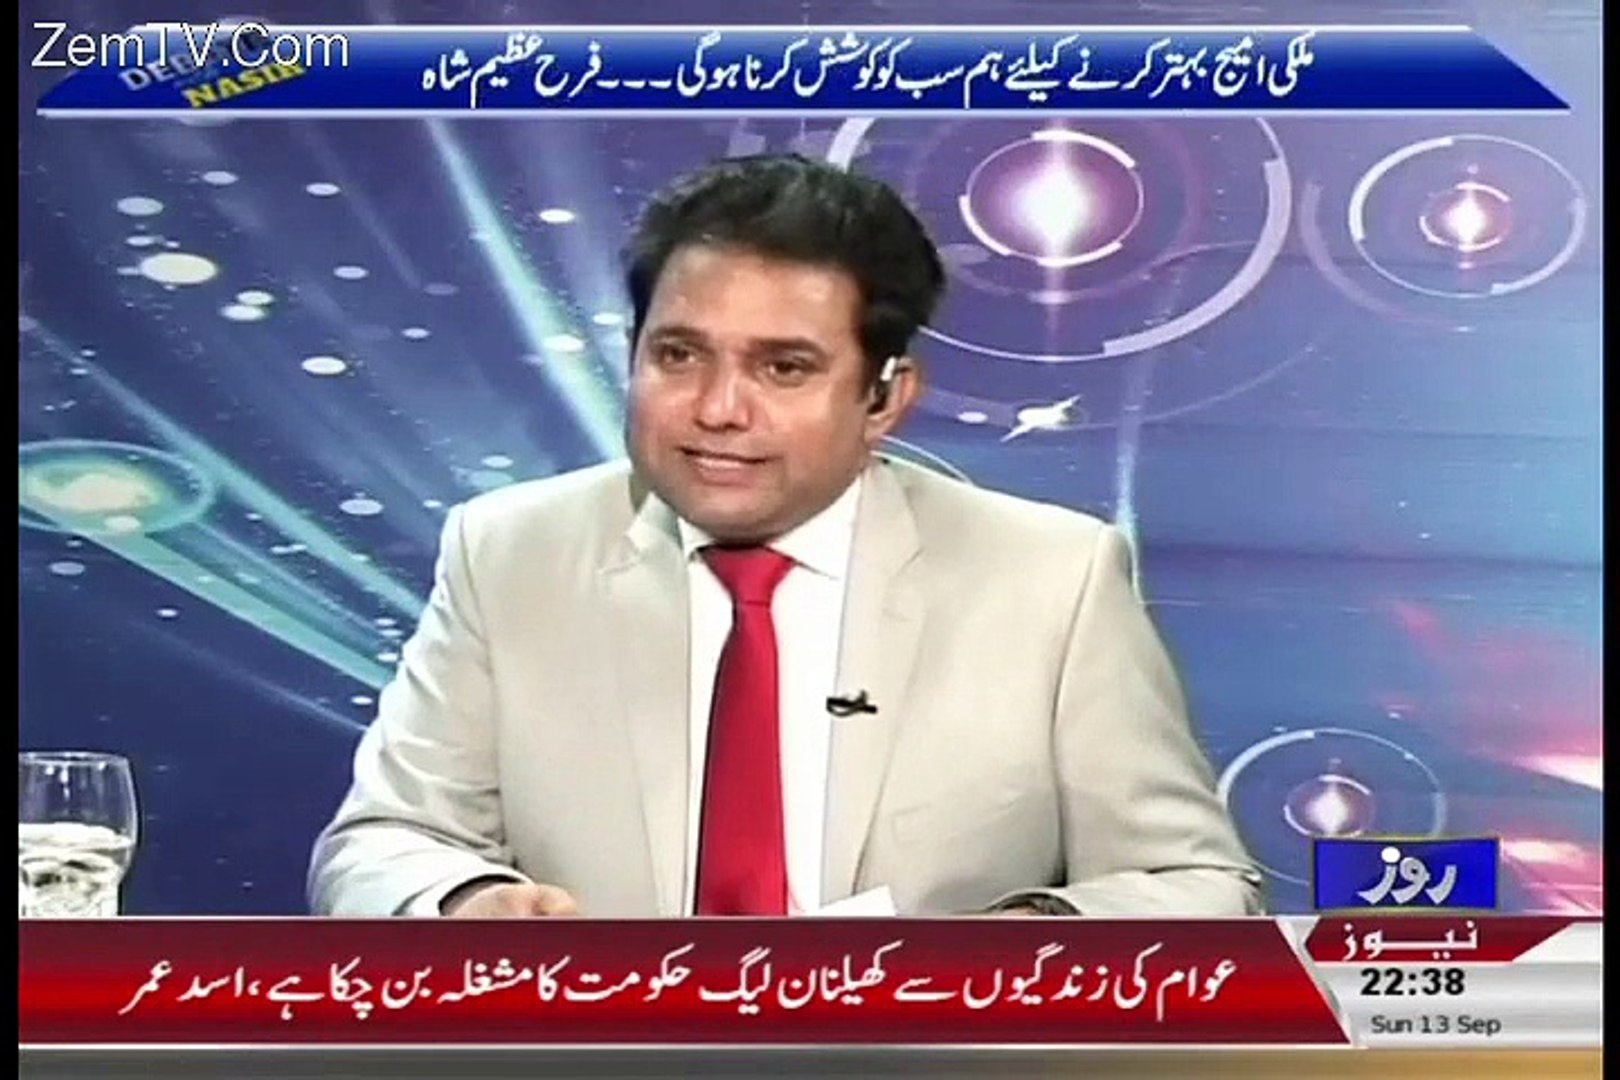 Open discussion on WINE between anchor and guest in a TV show